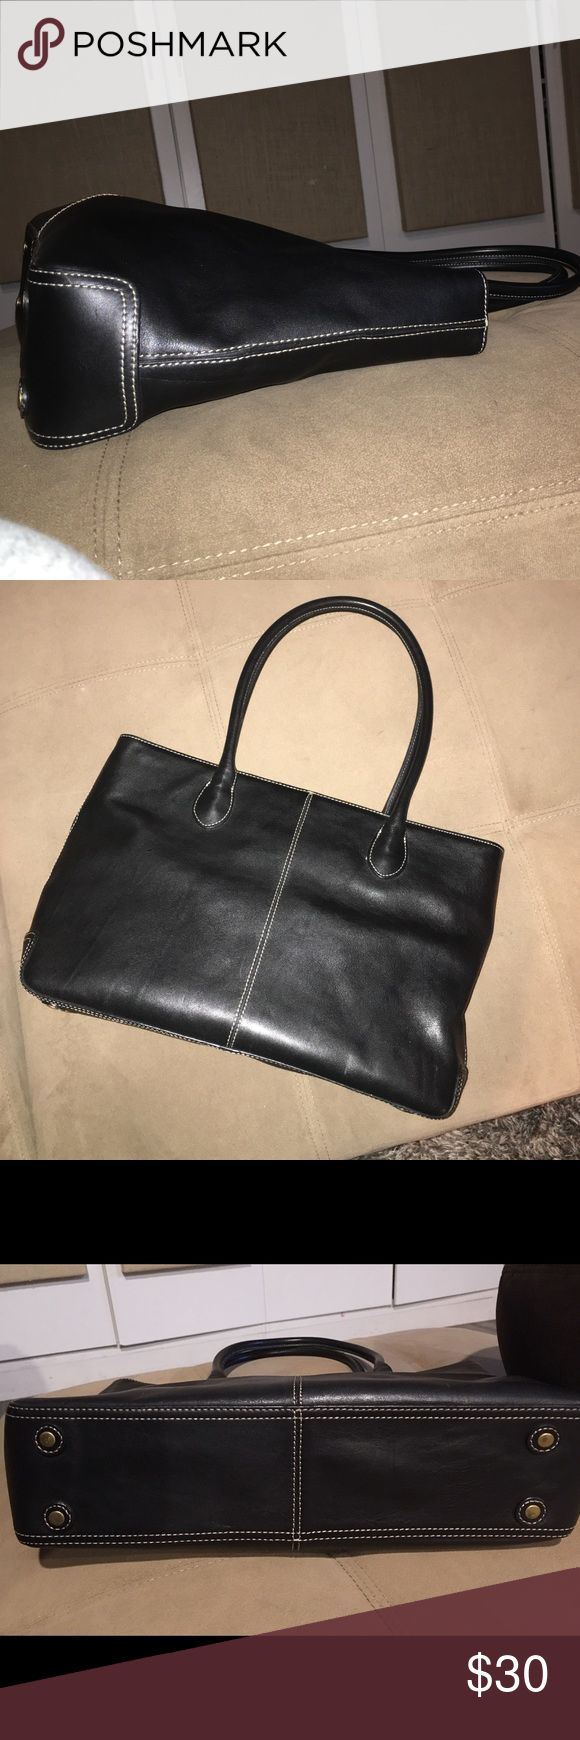 J crew leather tote 👜 This is a beautiful J crew leather tote in the classy classic J crew style. Gently used J crew Bags Totes